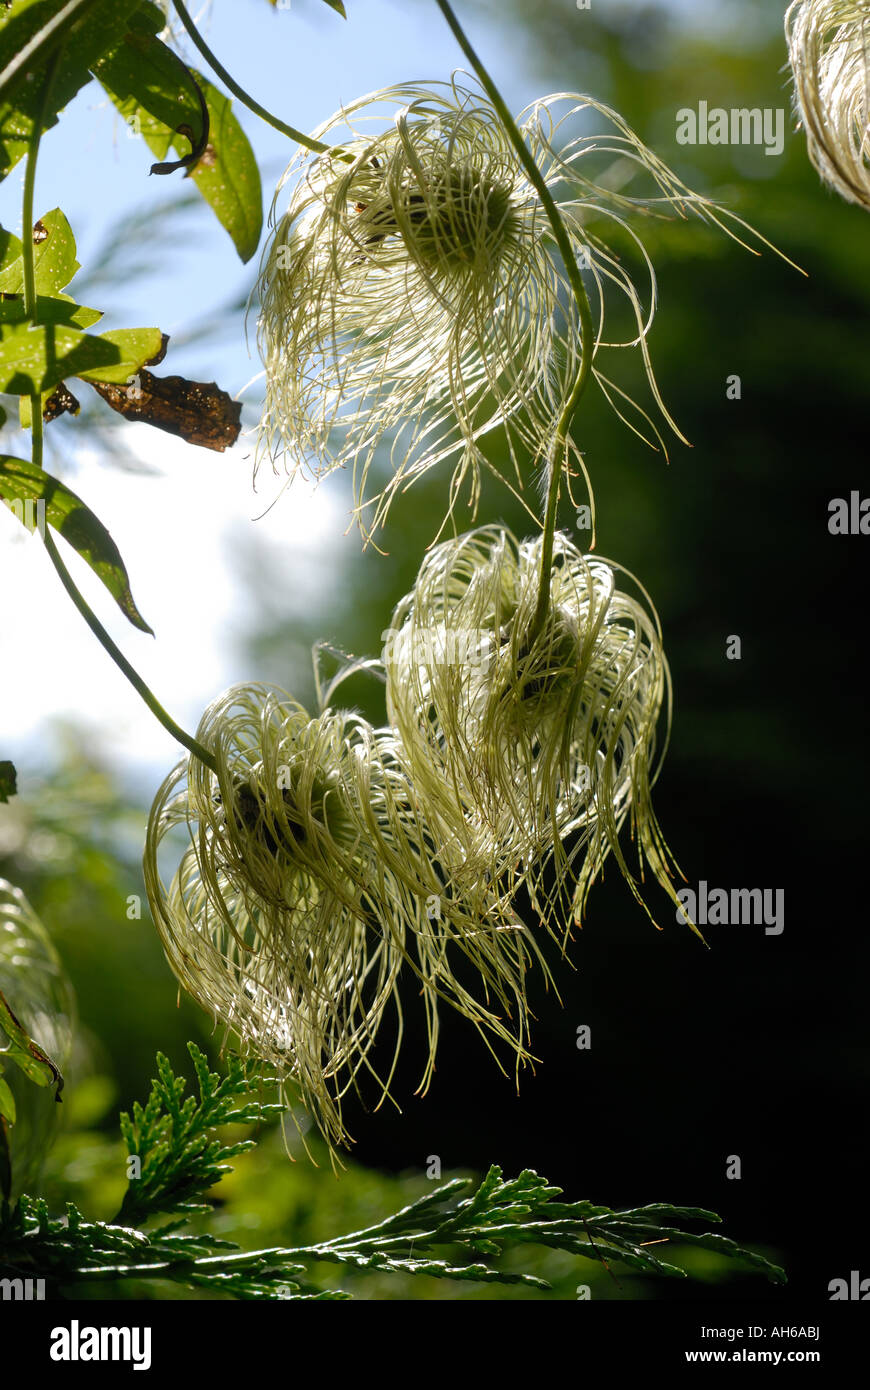 hairy clematis stockfotos hairy clematis bilder alamy. Black Bedroom Furniture Sets. Home Design Ideas